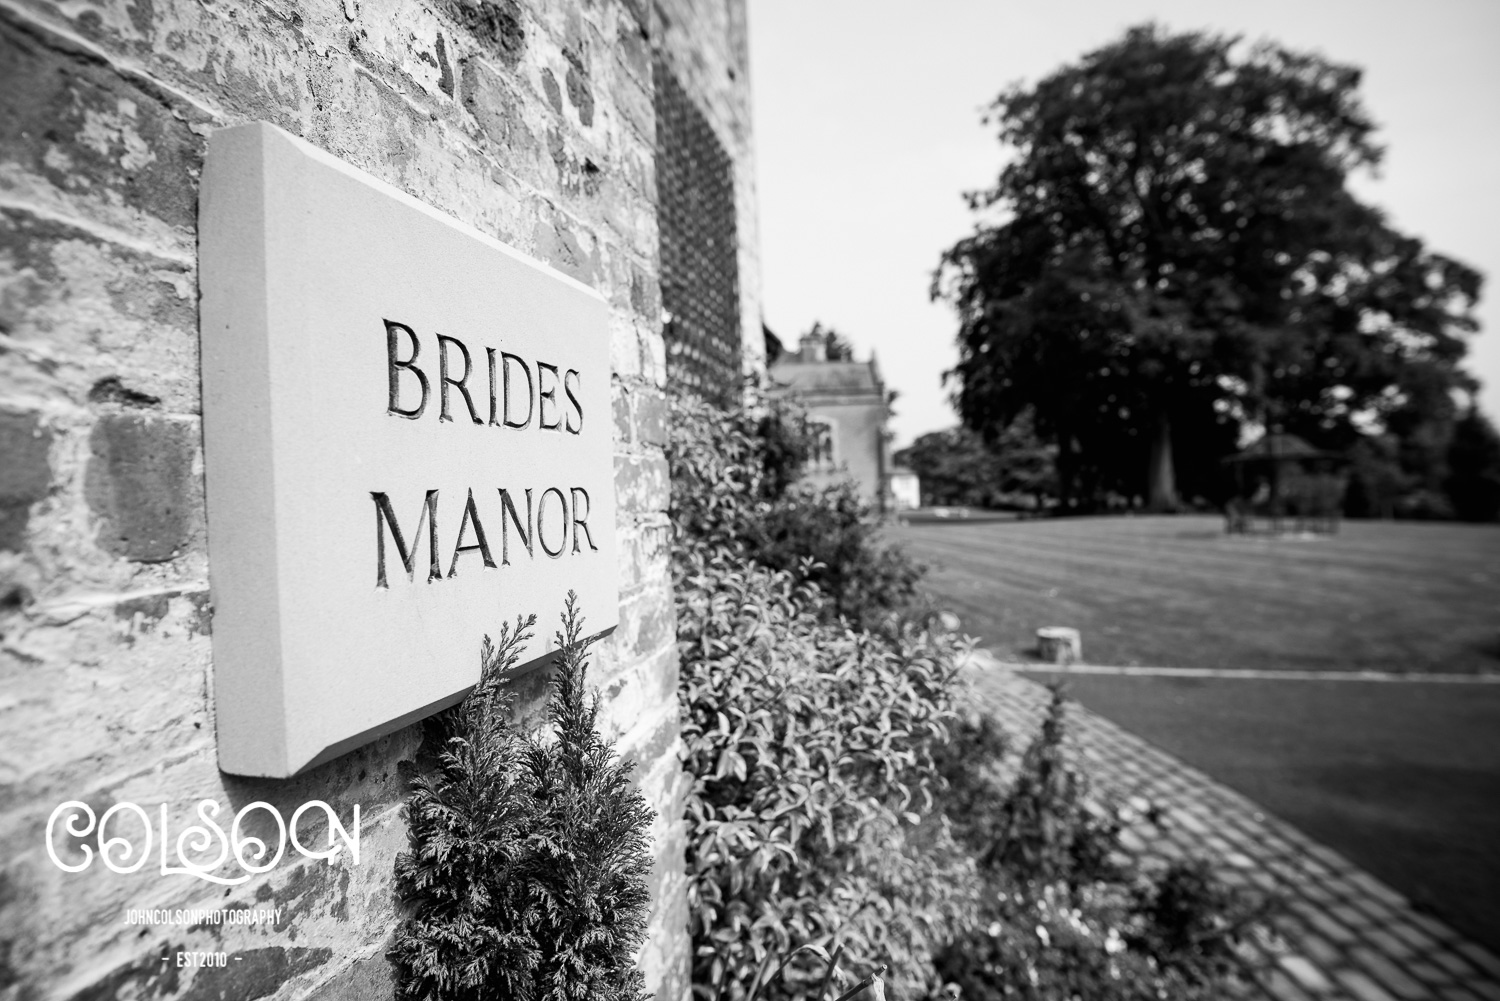 The Brides Manor at Stanbrook Abbey. A perfect spot for Bridal Preparations.